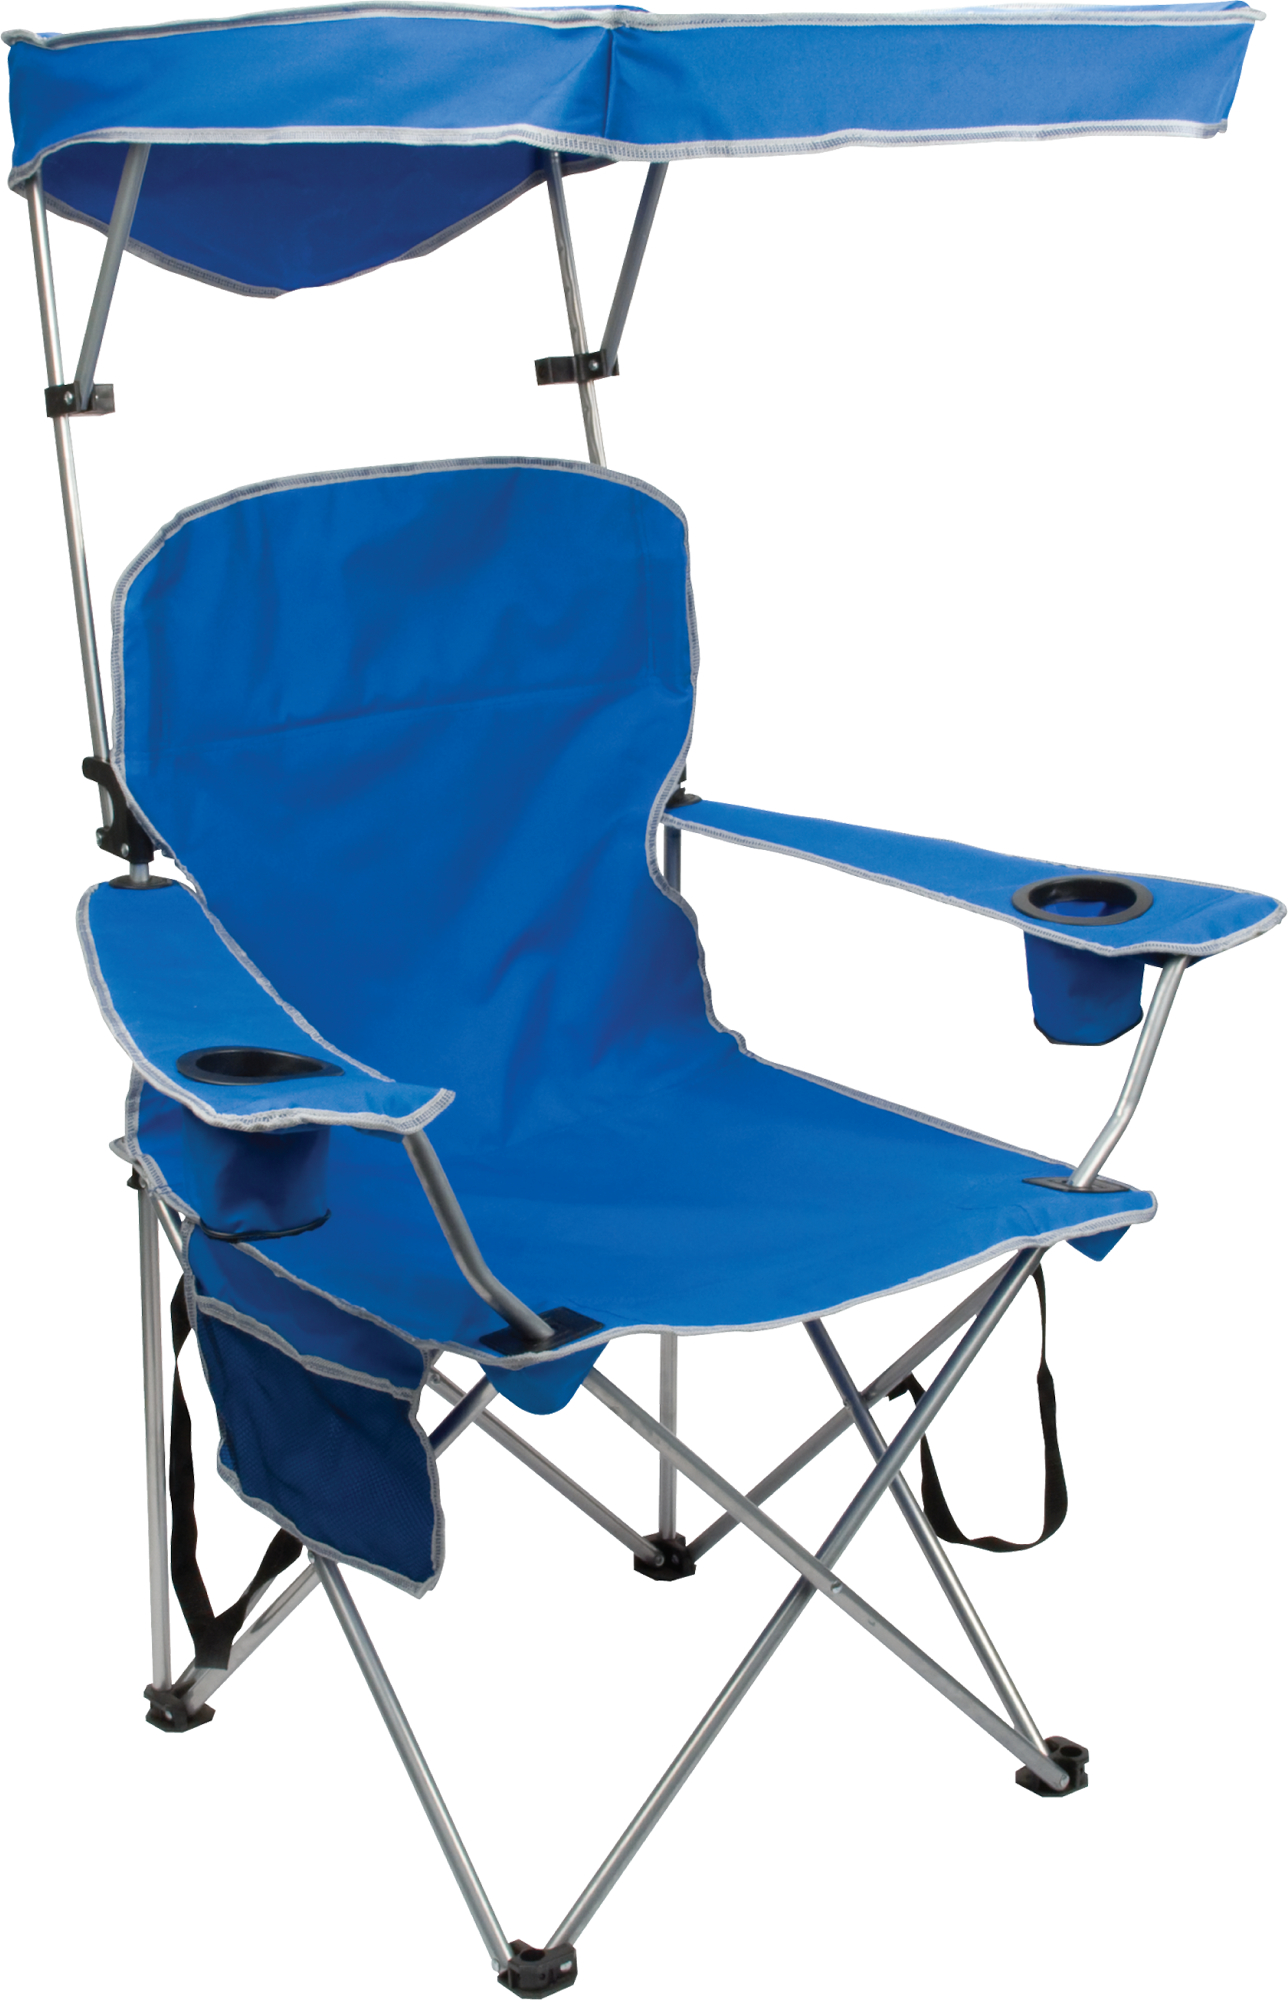 Full Size Shade Chair, Royal Blue Fabric, Silver frame